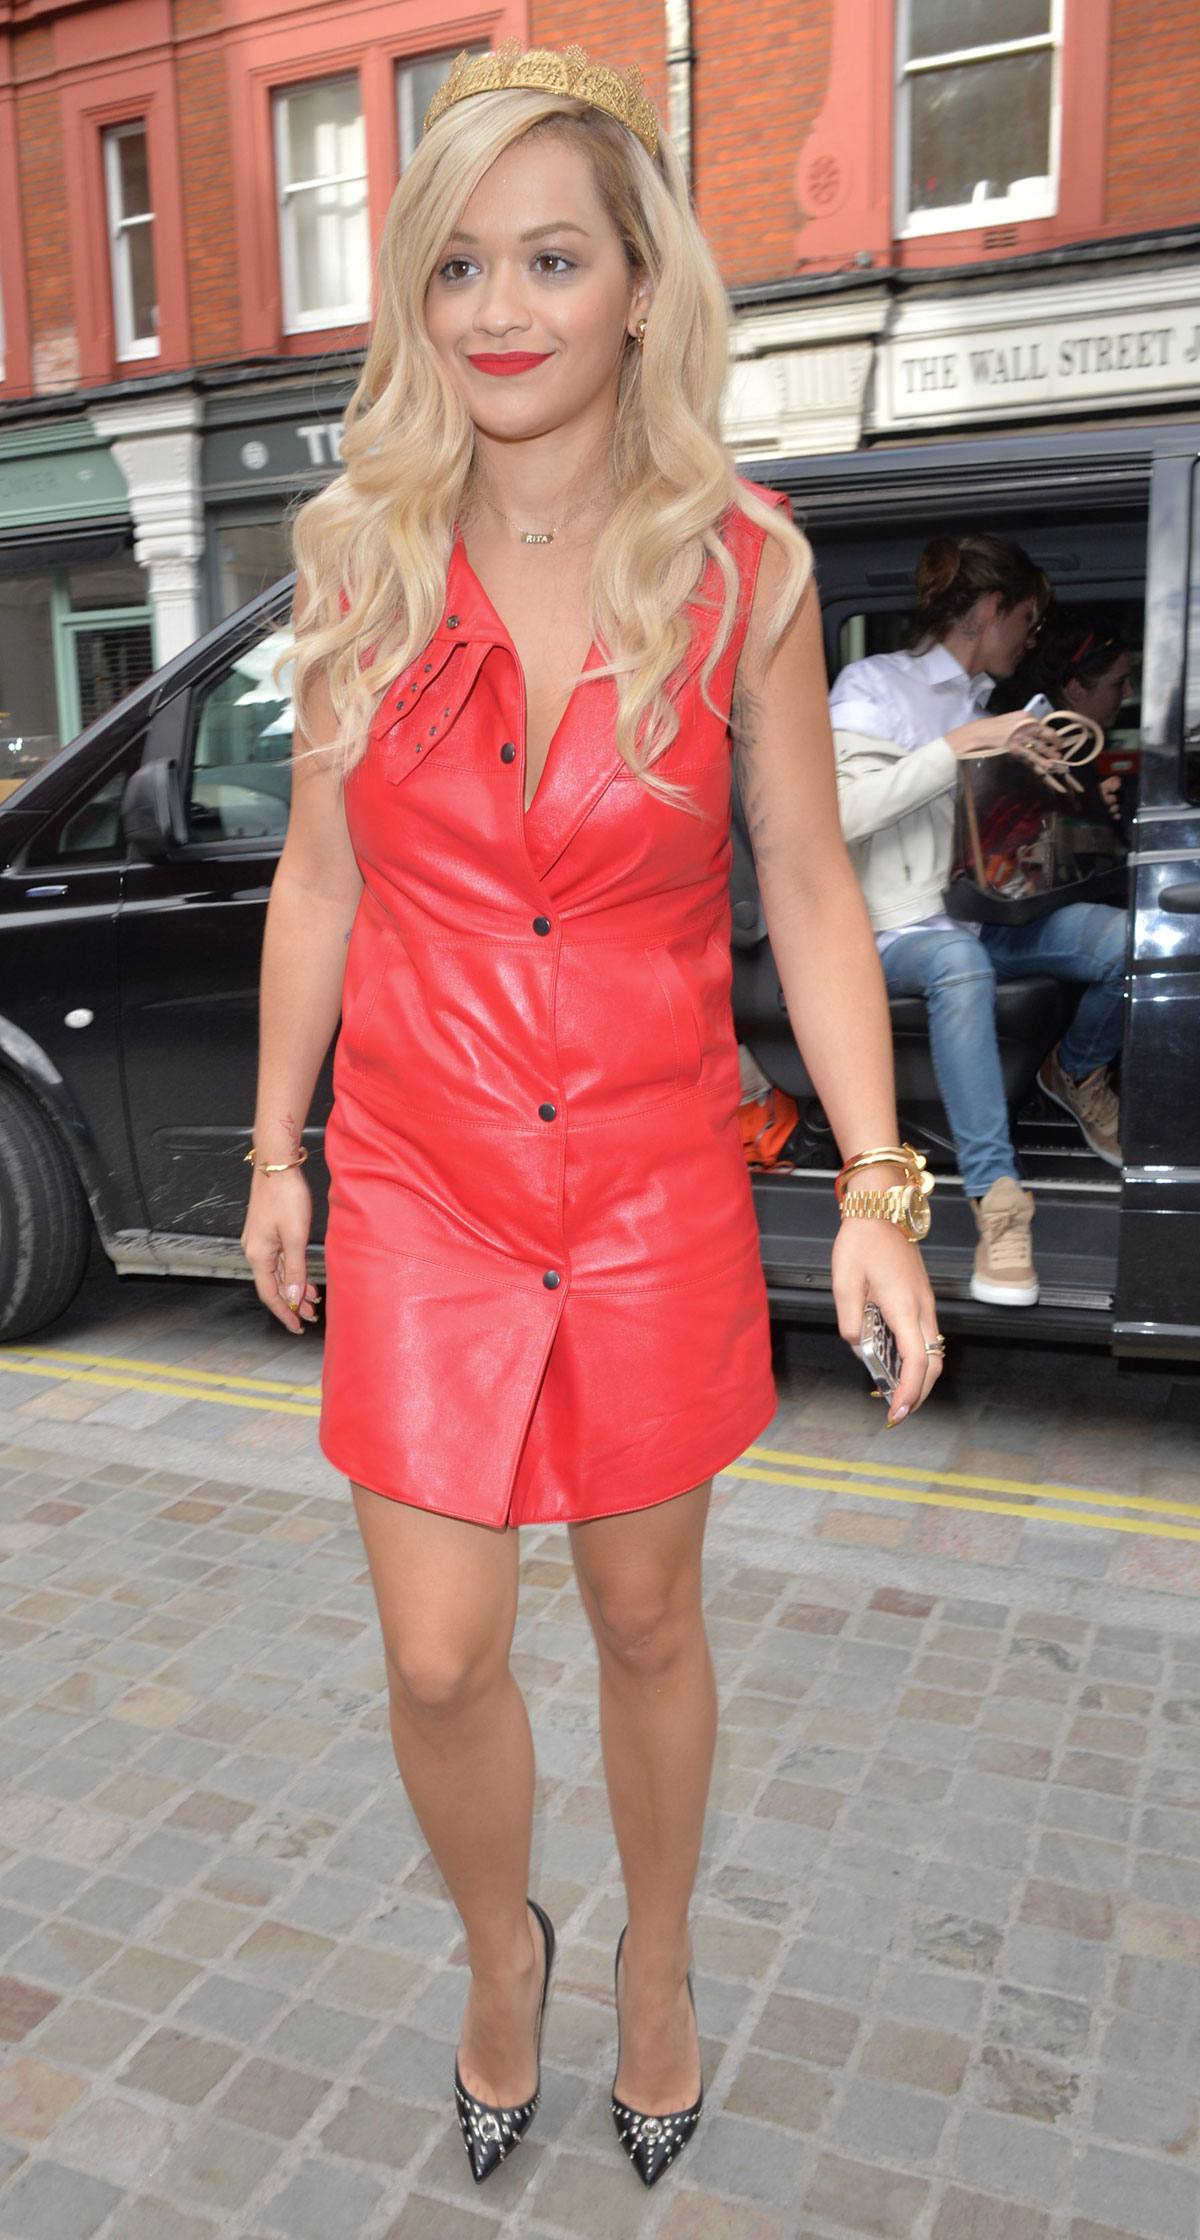 Rita Ora at Capital FM studios